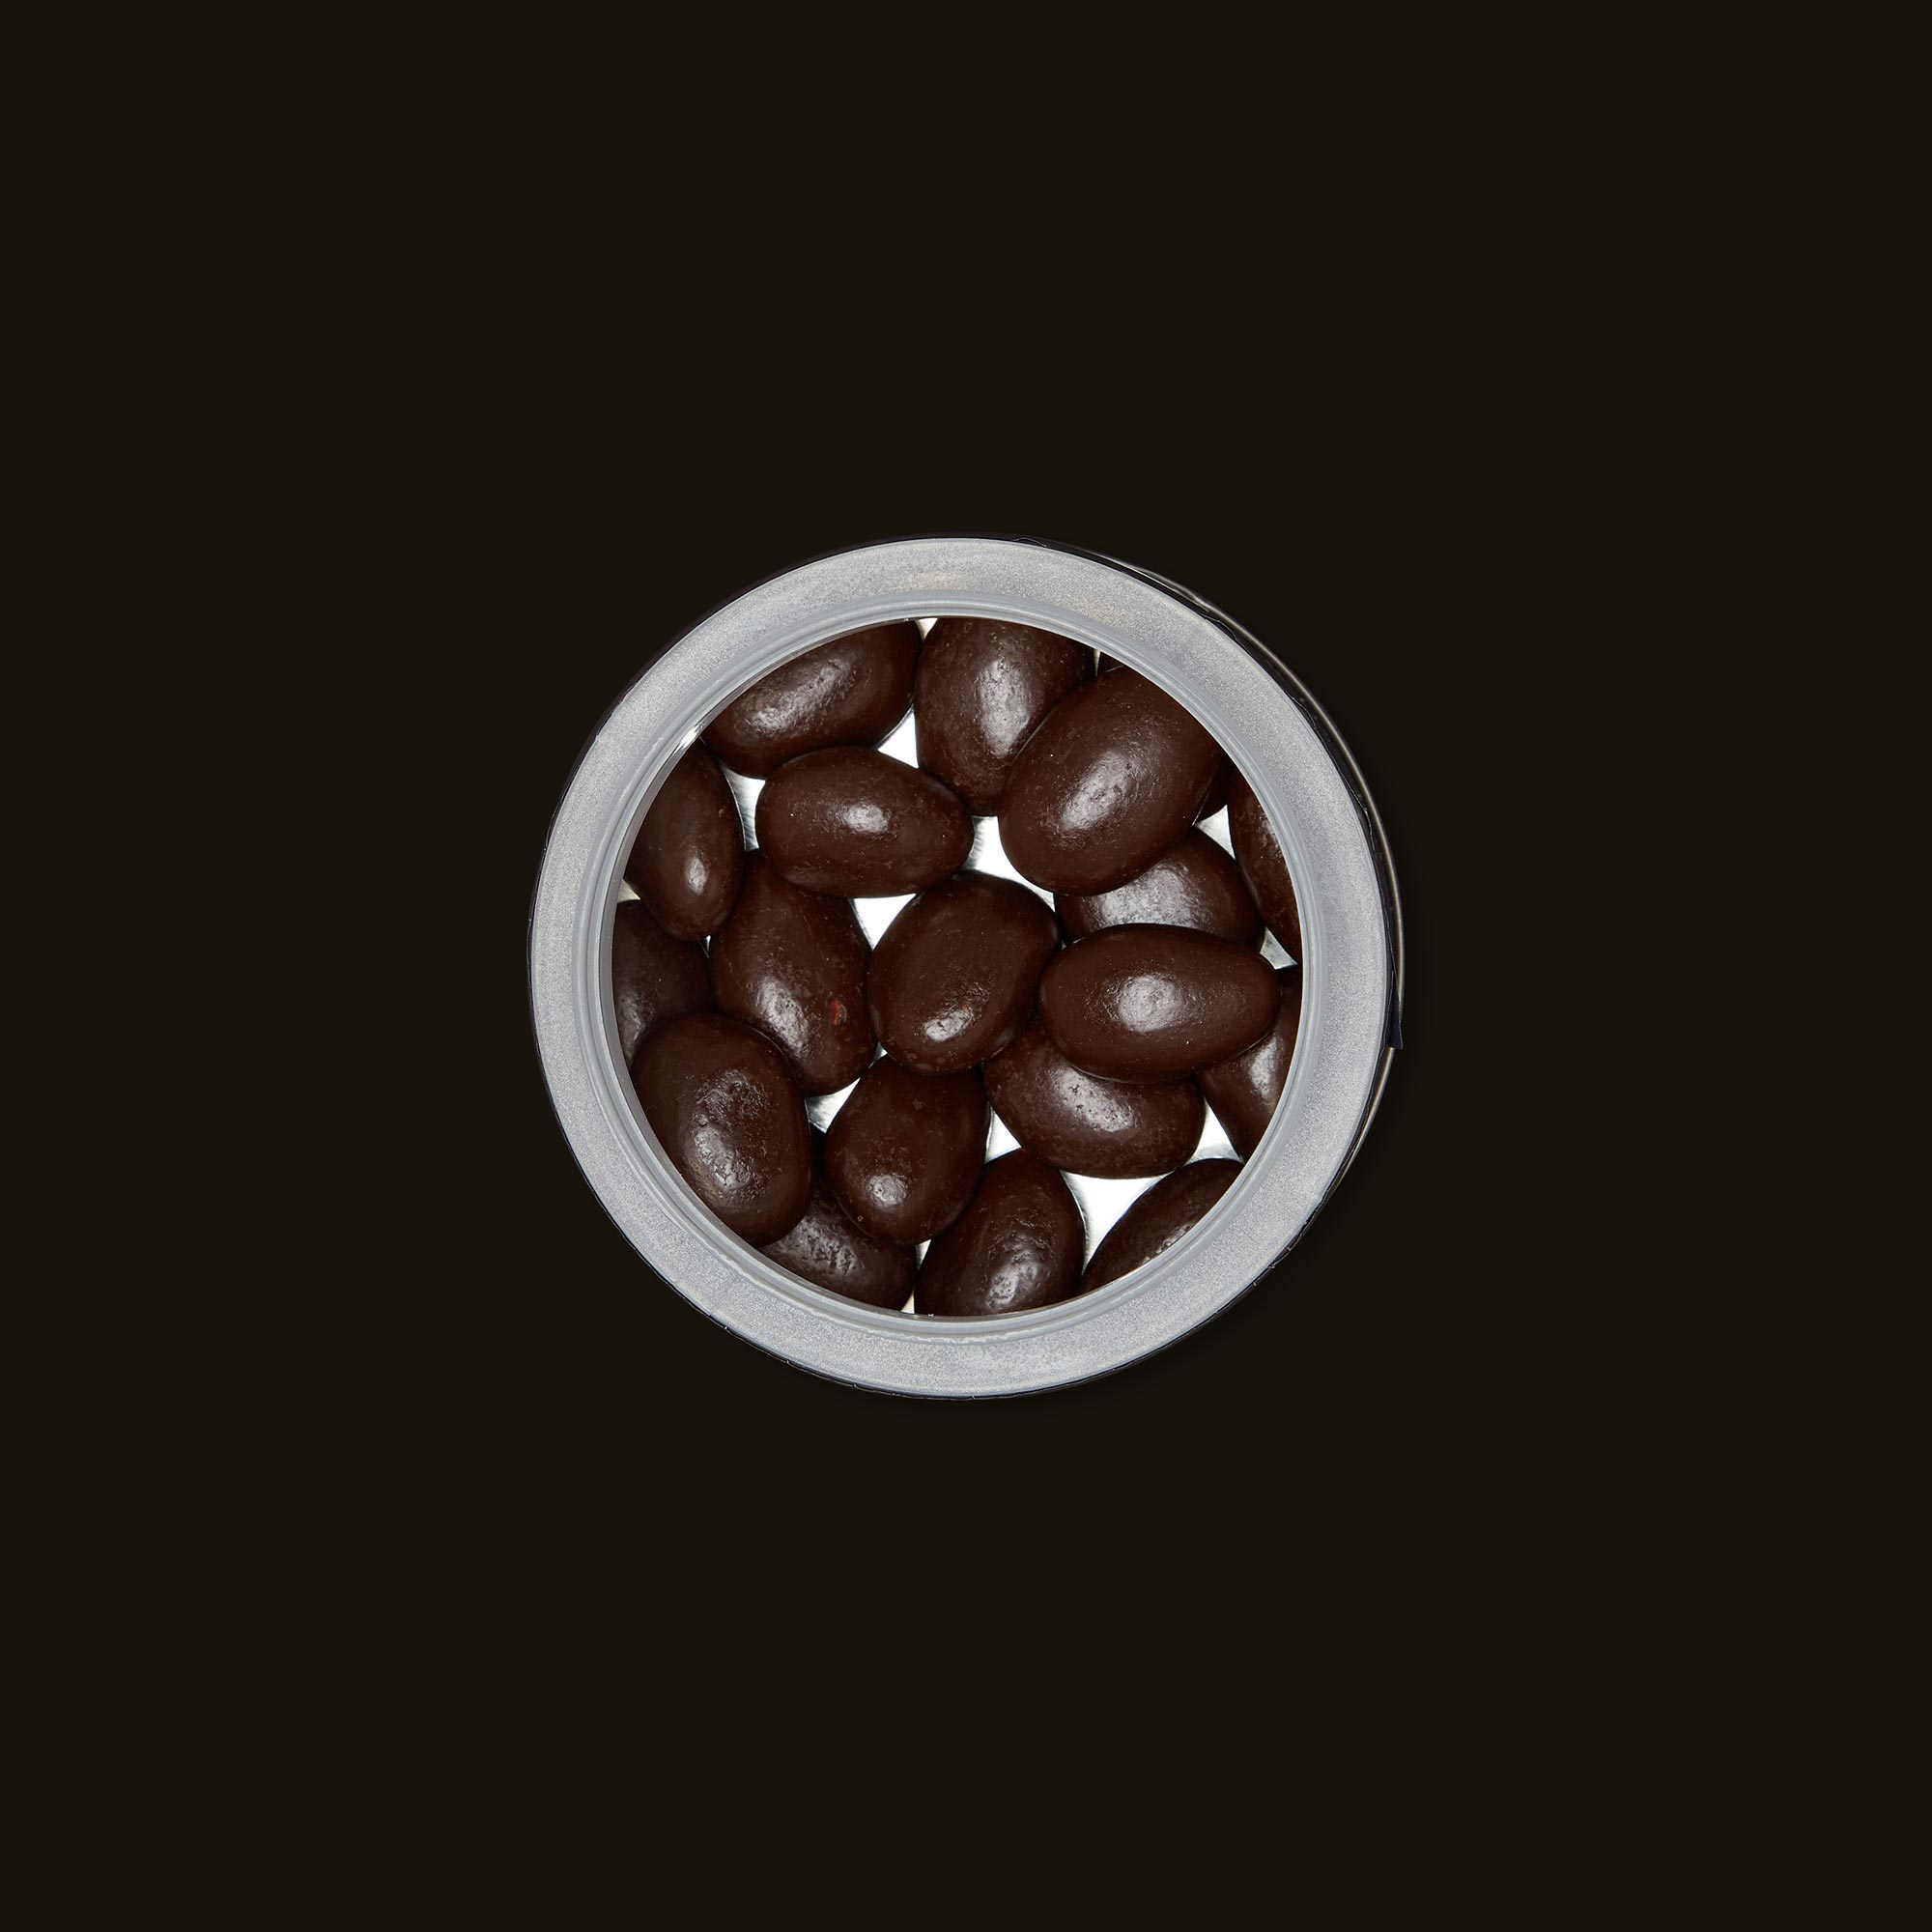 Satori Chocolates Sweet and Salty Almonds Open Packaging